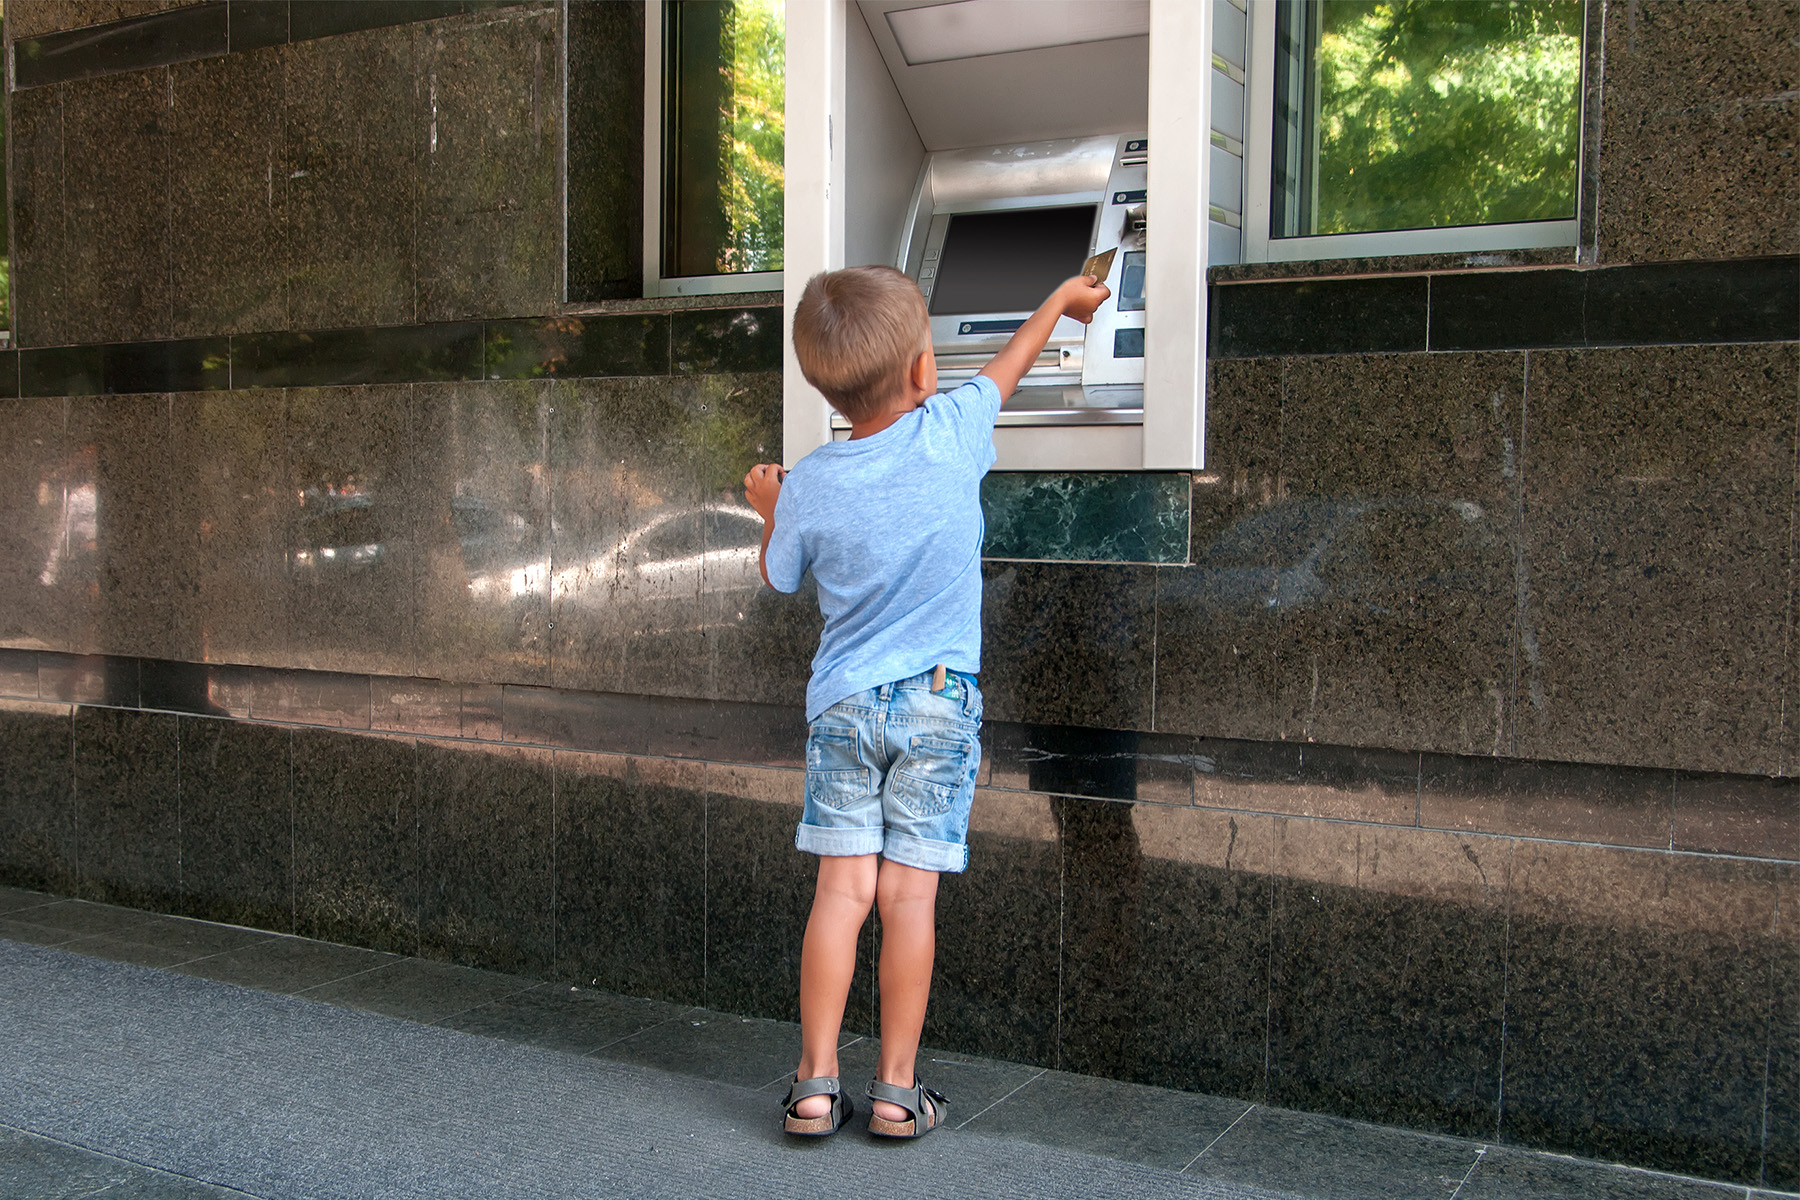 Young boy using ATM